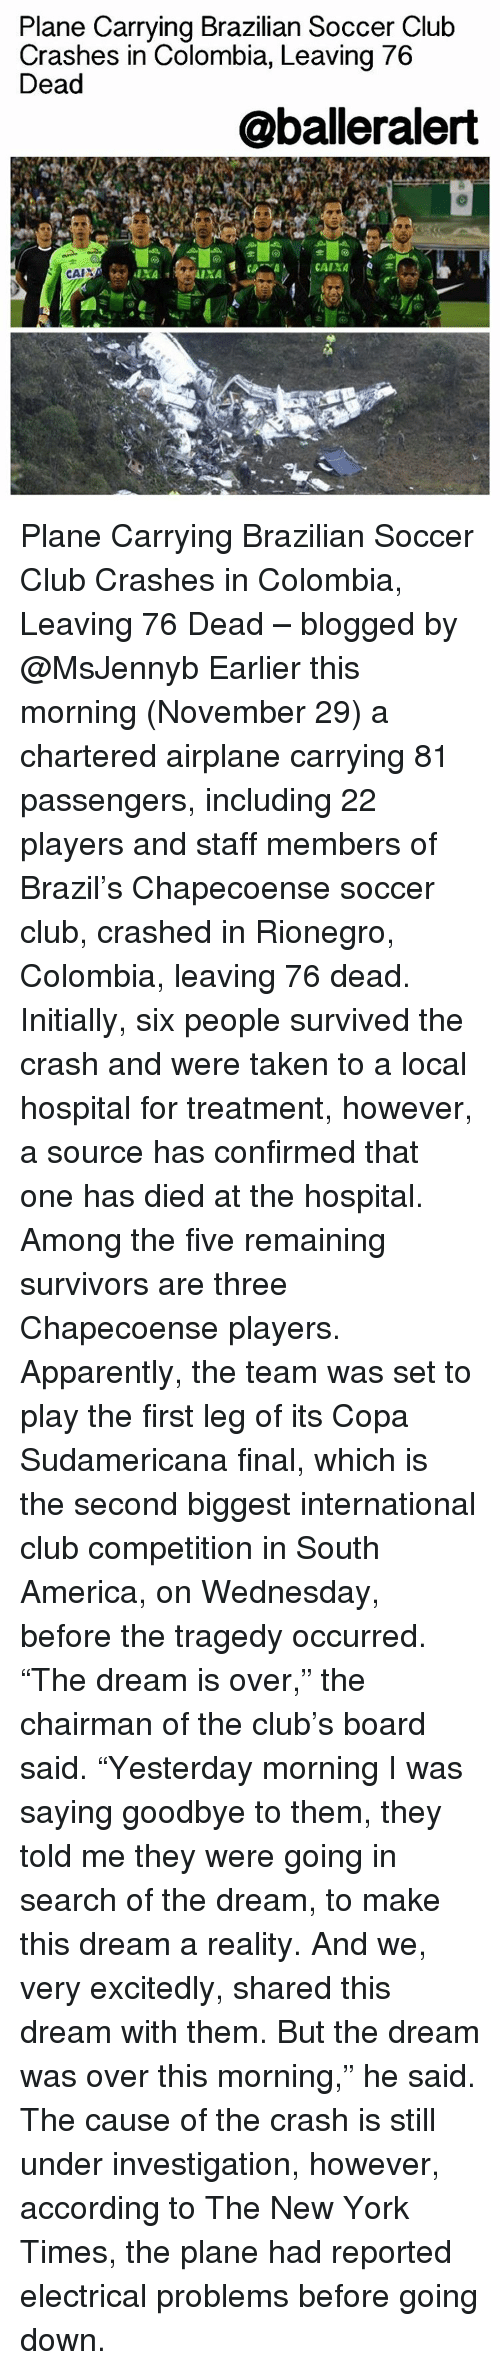 "The Chairman: Plane Carrying Brazilian Soccer Club  Crashes in Colombia, Leaving 76  Dead  @balleralert  CAIXA  CAIN Plane Carrying Brazilian Soccer Club Crashes in Colombia, Leaving 76 Dead – blogged by @MsJennyb Earlier this morning (November 29) a chartered airplane carrying 81 passengers, including 22 players and staff members of Brazil's Chapecoense soccer club, crashed in Rionegro, Colombia, leaving 76 dead. Initially, six people survived the crash and were taken to a local hospital for treatment, however, a source has confirmed that one has died at the hospital. Among the five remaining survivors are three Chapecoense players. Apparently, the team was set to play the first leg of its Copa Sudamericana final, which is the second biggest international club competition in South America, on Wednesday, before the tragedy occurred. ""The dream is over,"" the chairman of the club's board said. ""Yesterday morning I was saying goodbye to them, they told me they were going in search of the dream, to make this dream a reality. And we, very excitedly, shared this dream with them. But the dream was over this morning,"" he said. The cause of the crash is still under investigation, however, according to The New York Times, the plane had reported electrical problems before going down."